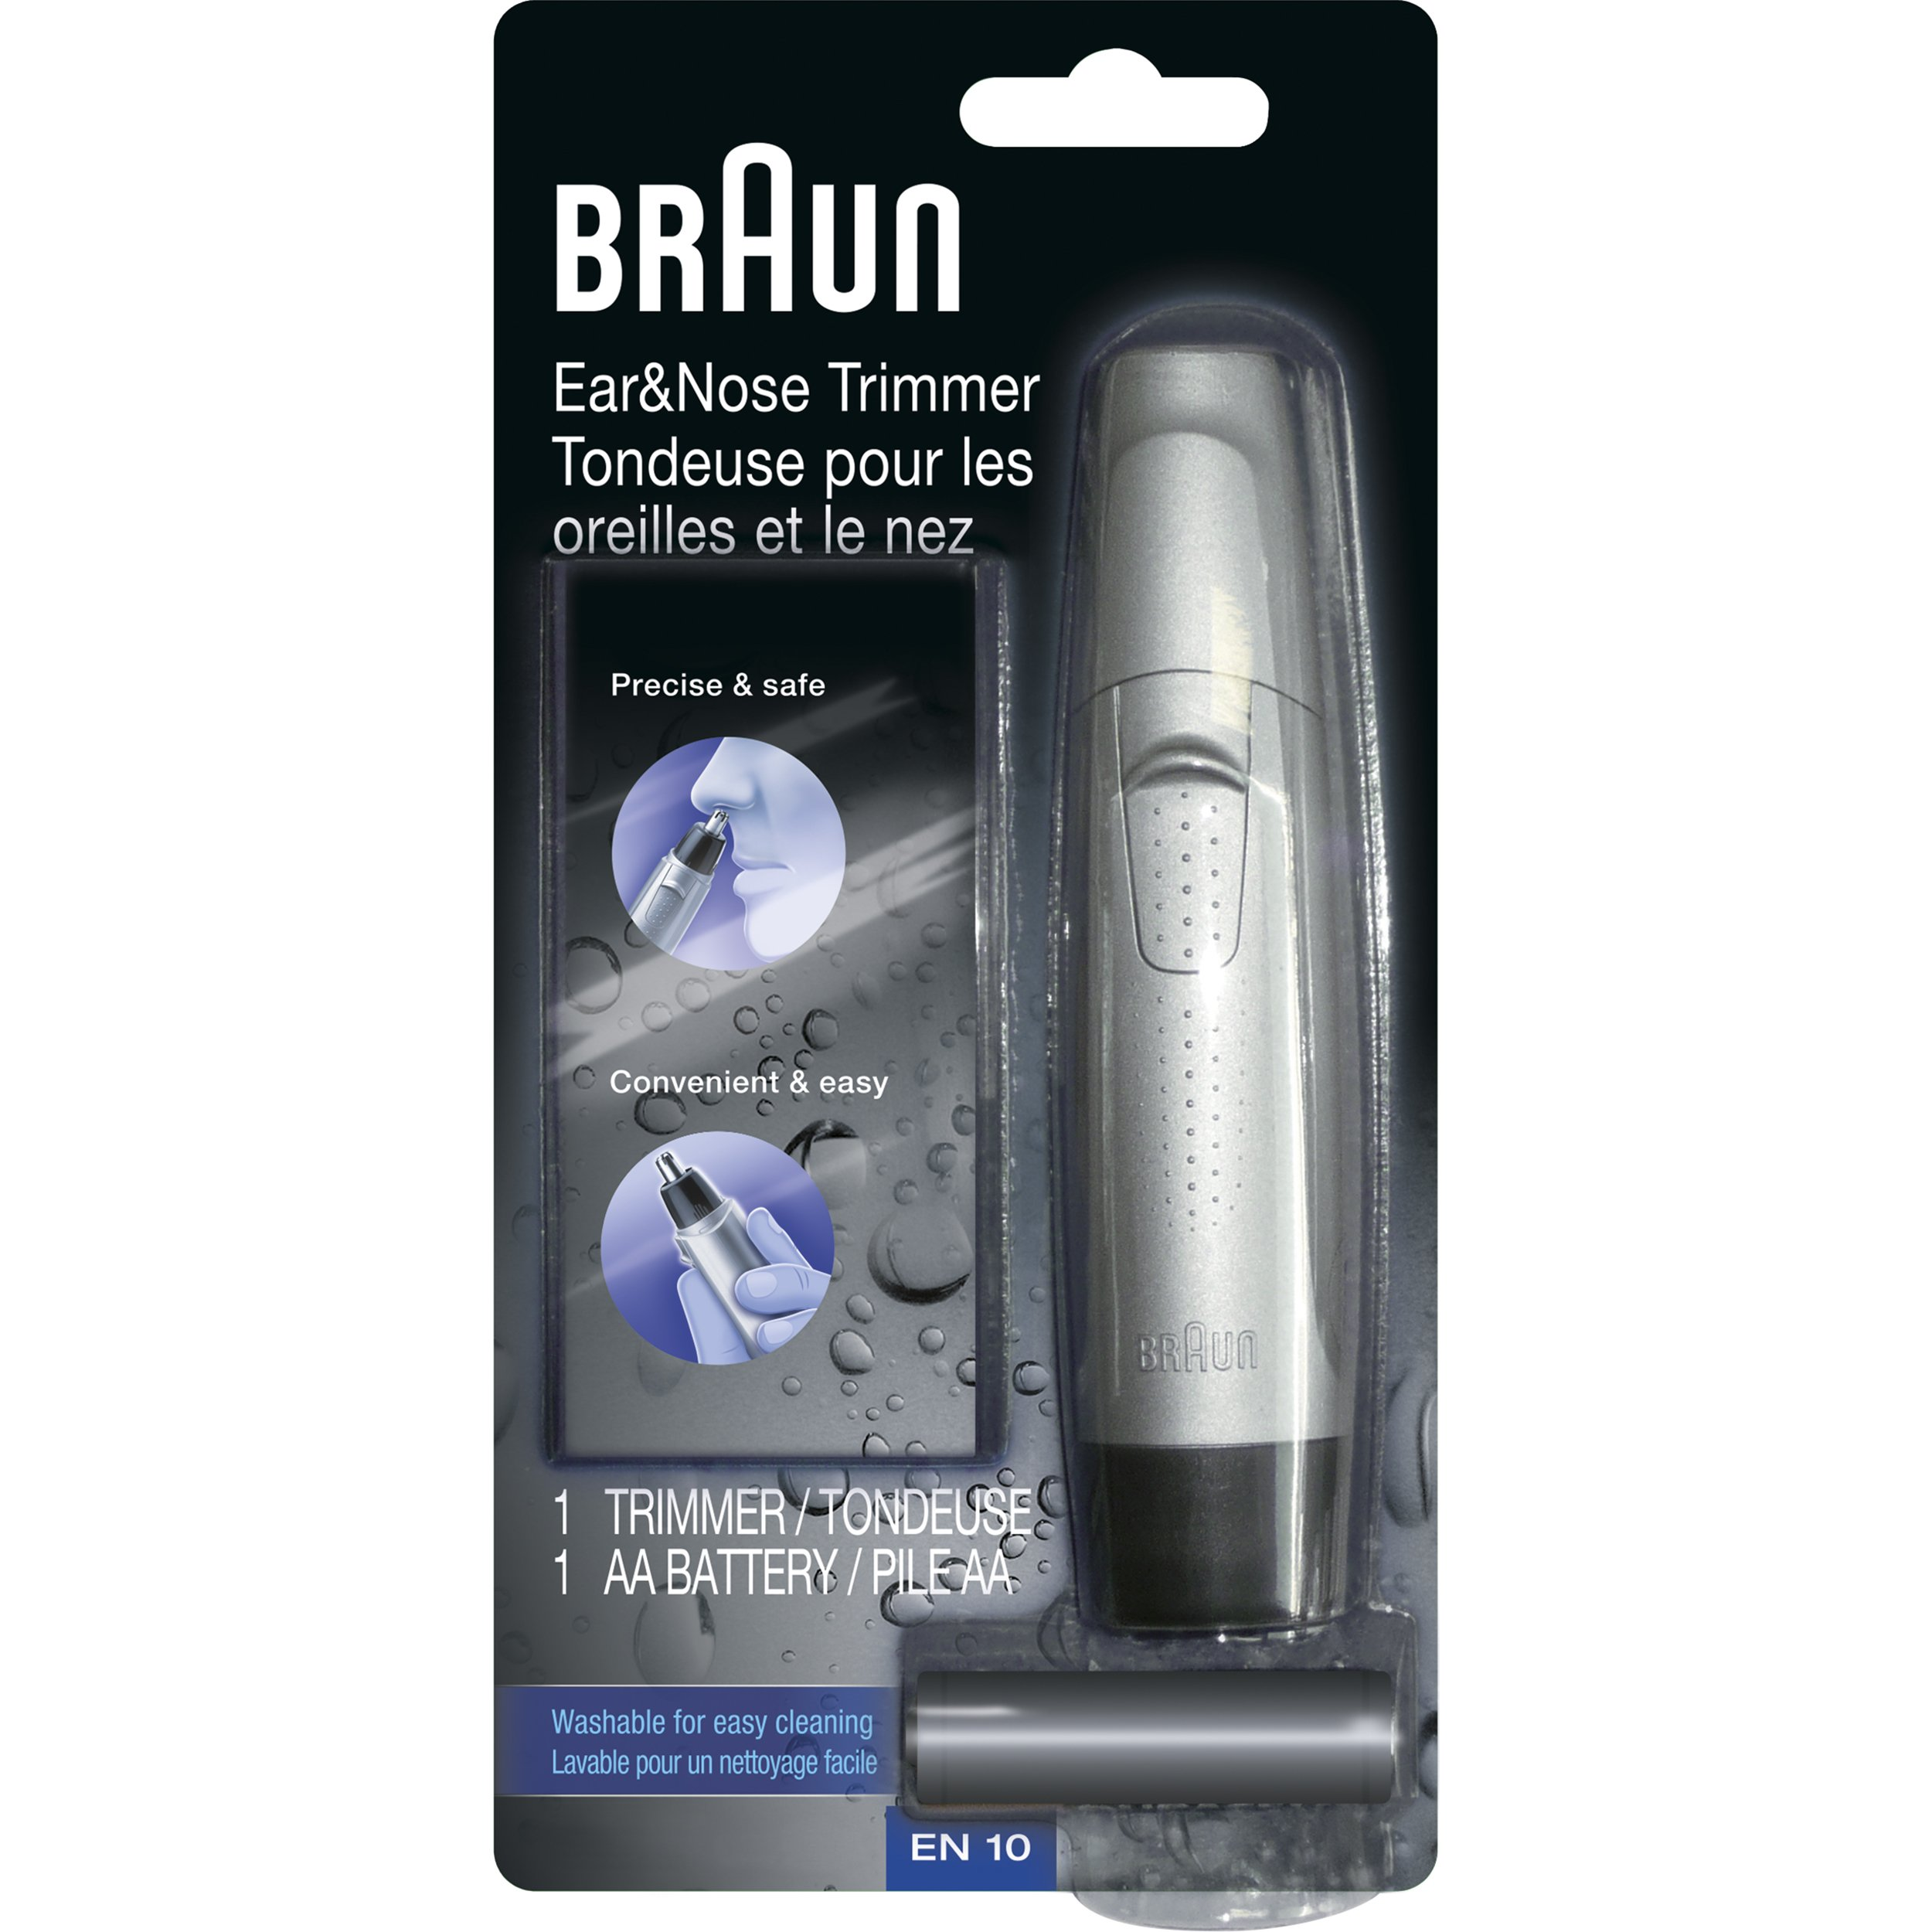 Braun Beard Trimmer Bt5070 Easy Fast And Precise